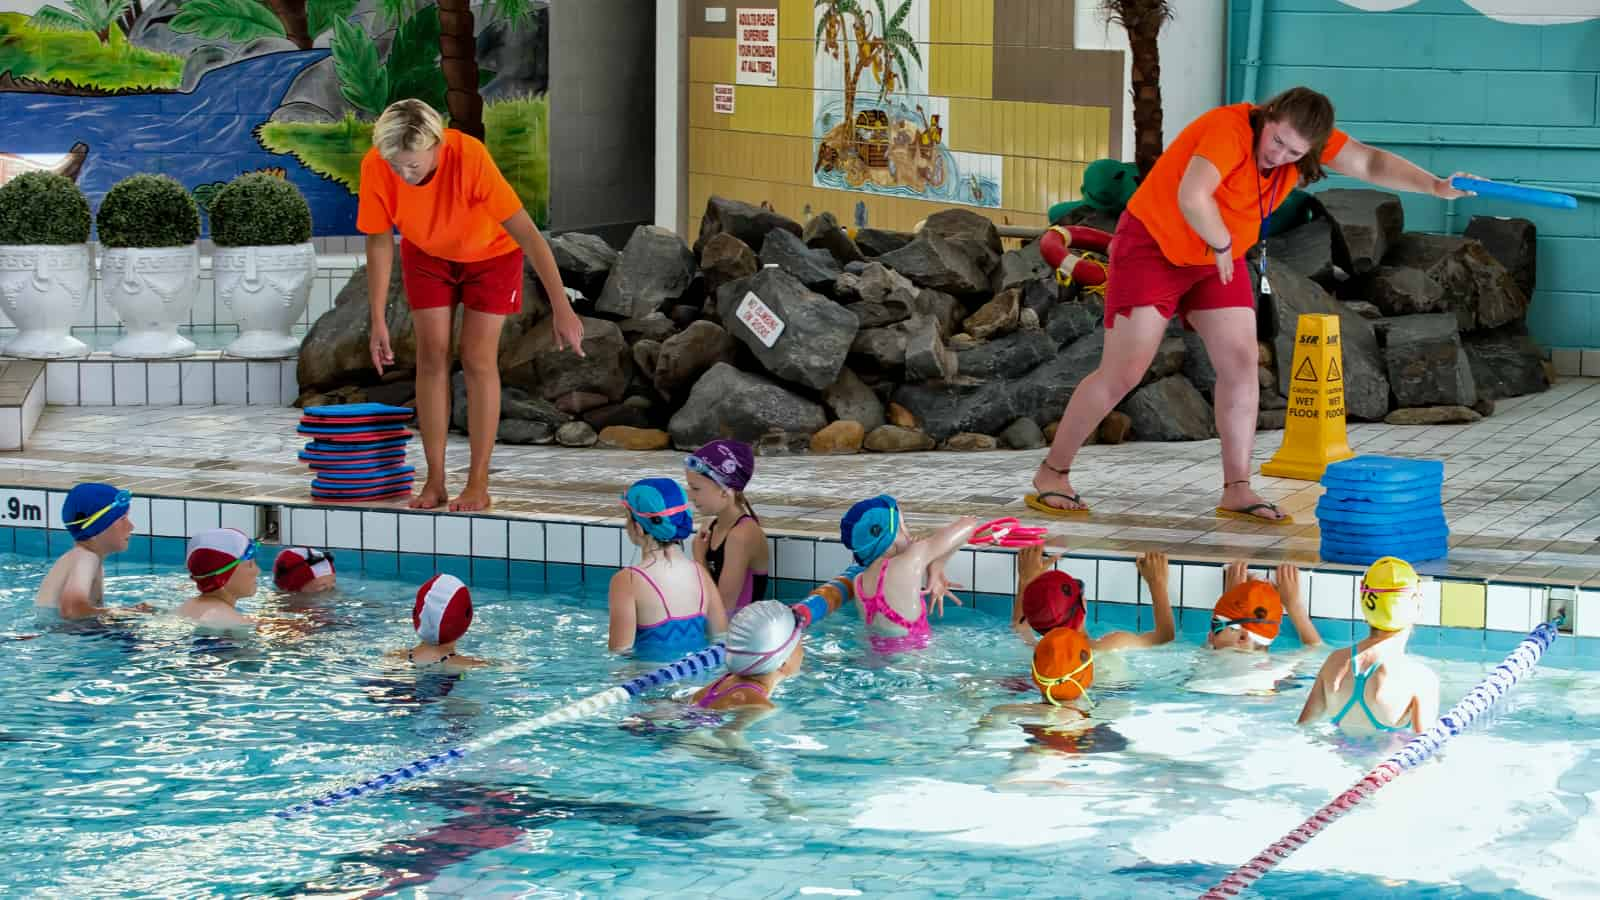 Swimming Instructor teaching a group of children to swim during swimming Lessons